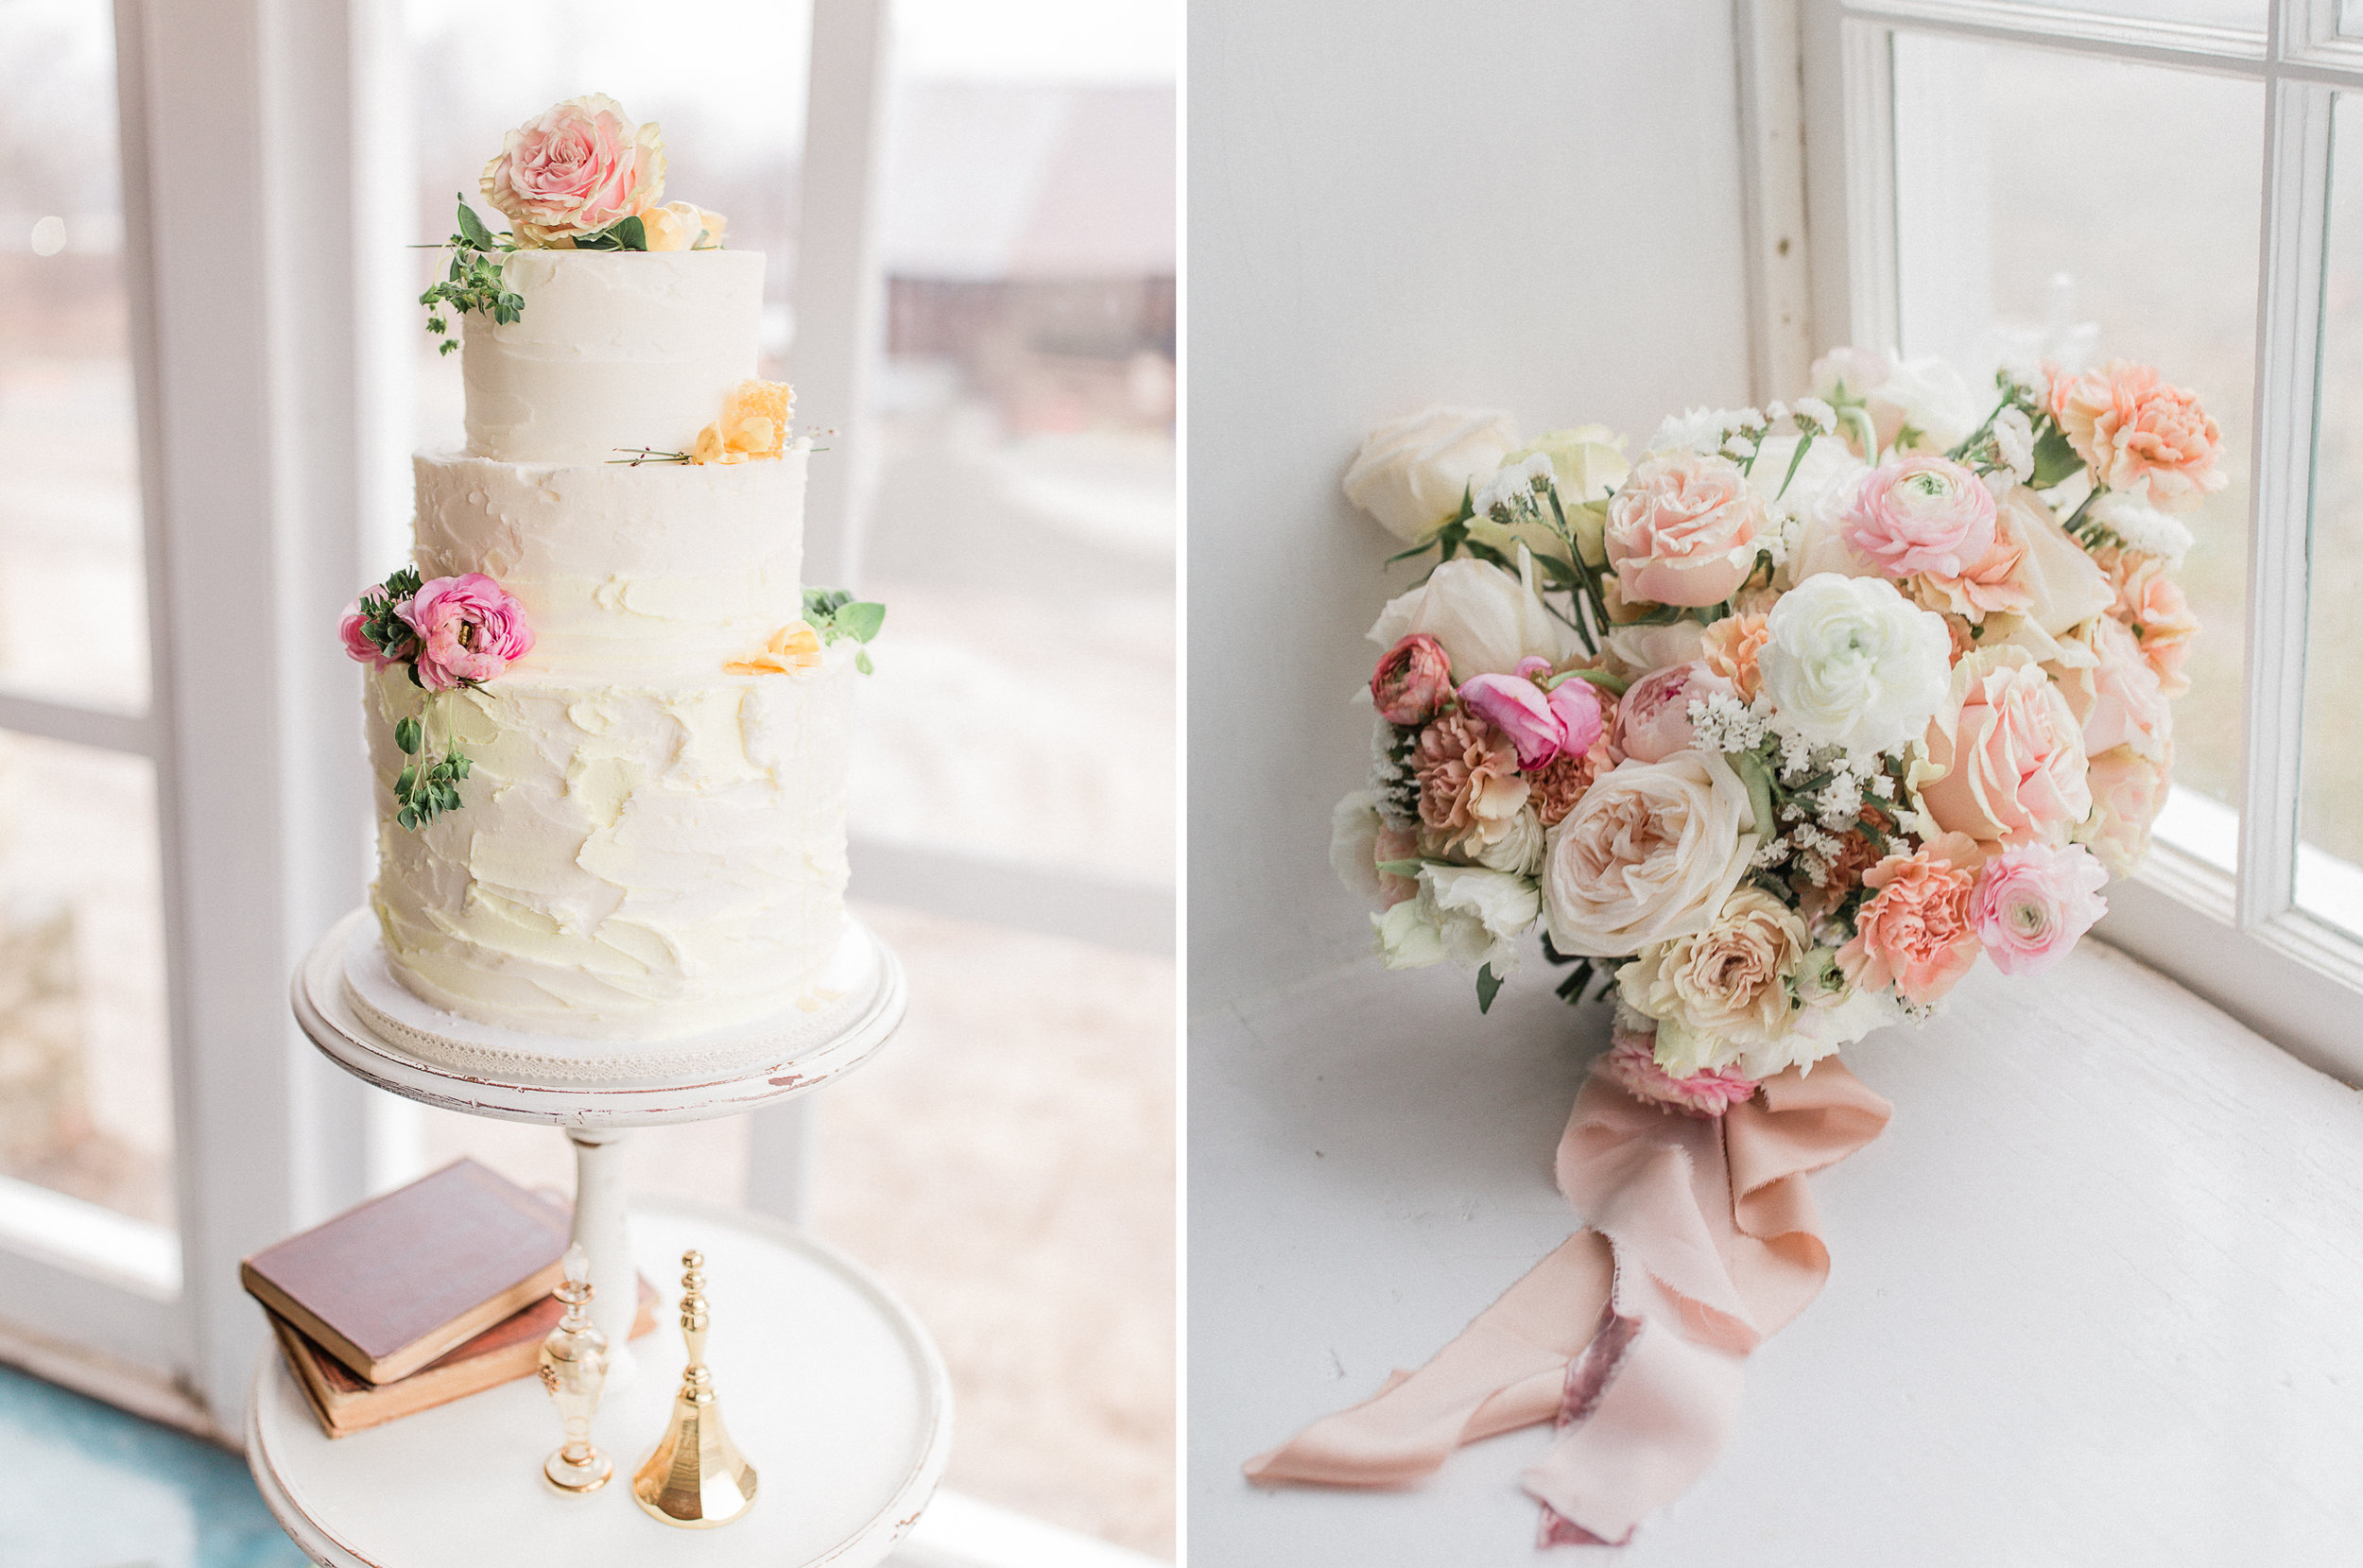 dorothy_louise_photography_old_stone_house_st._charles_bridal_inspiration11.jpg